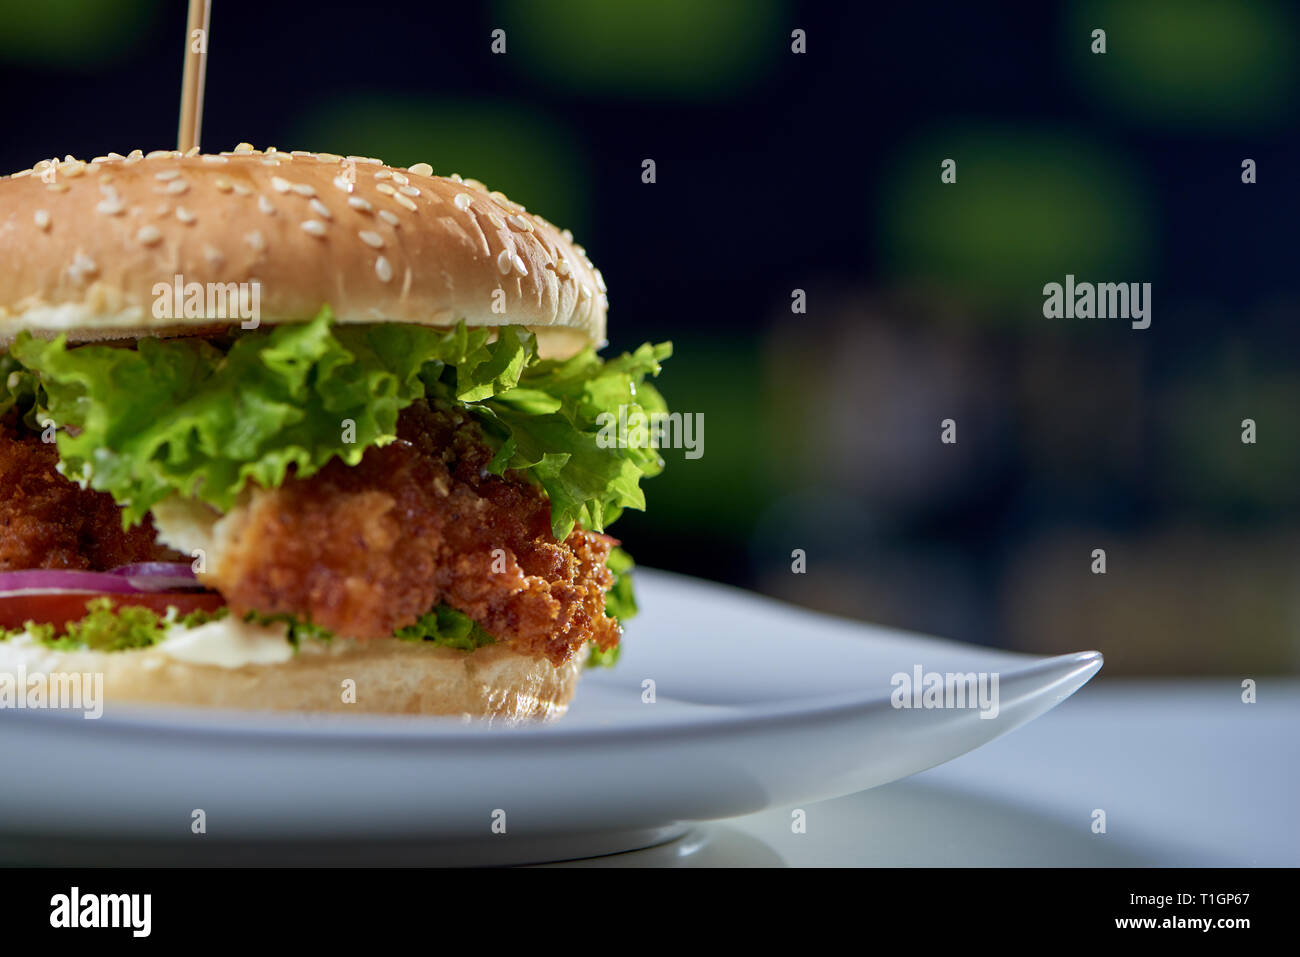 Closeup of juicy burger with fried chicken, fresh vegetables, greens and sesame staying on the plate in cafe. Big tasty sandwich cooked for eating. Concept of fast food and cuisine. - Stock Image